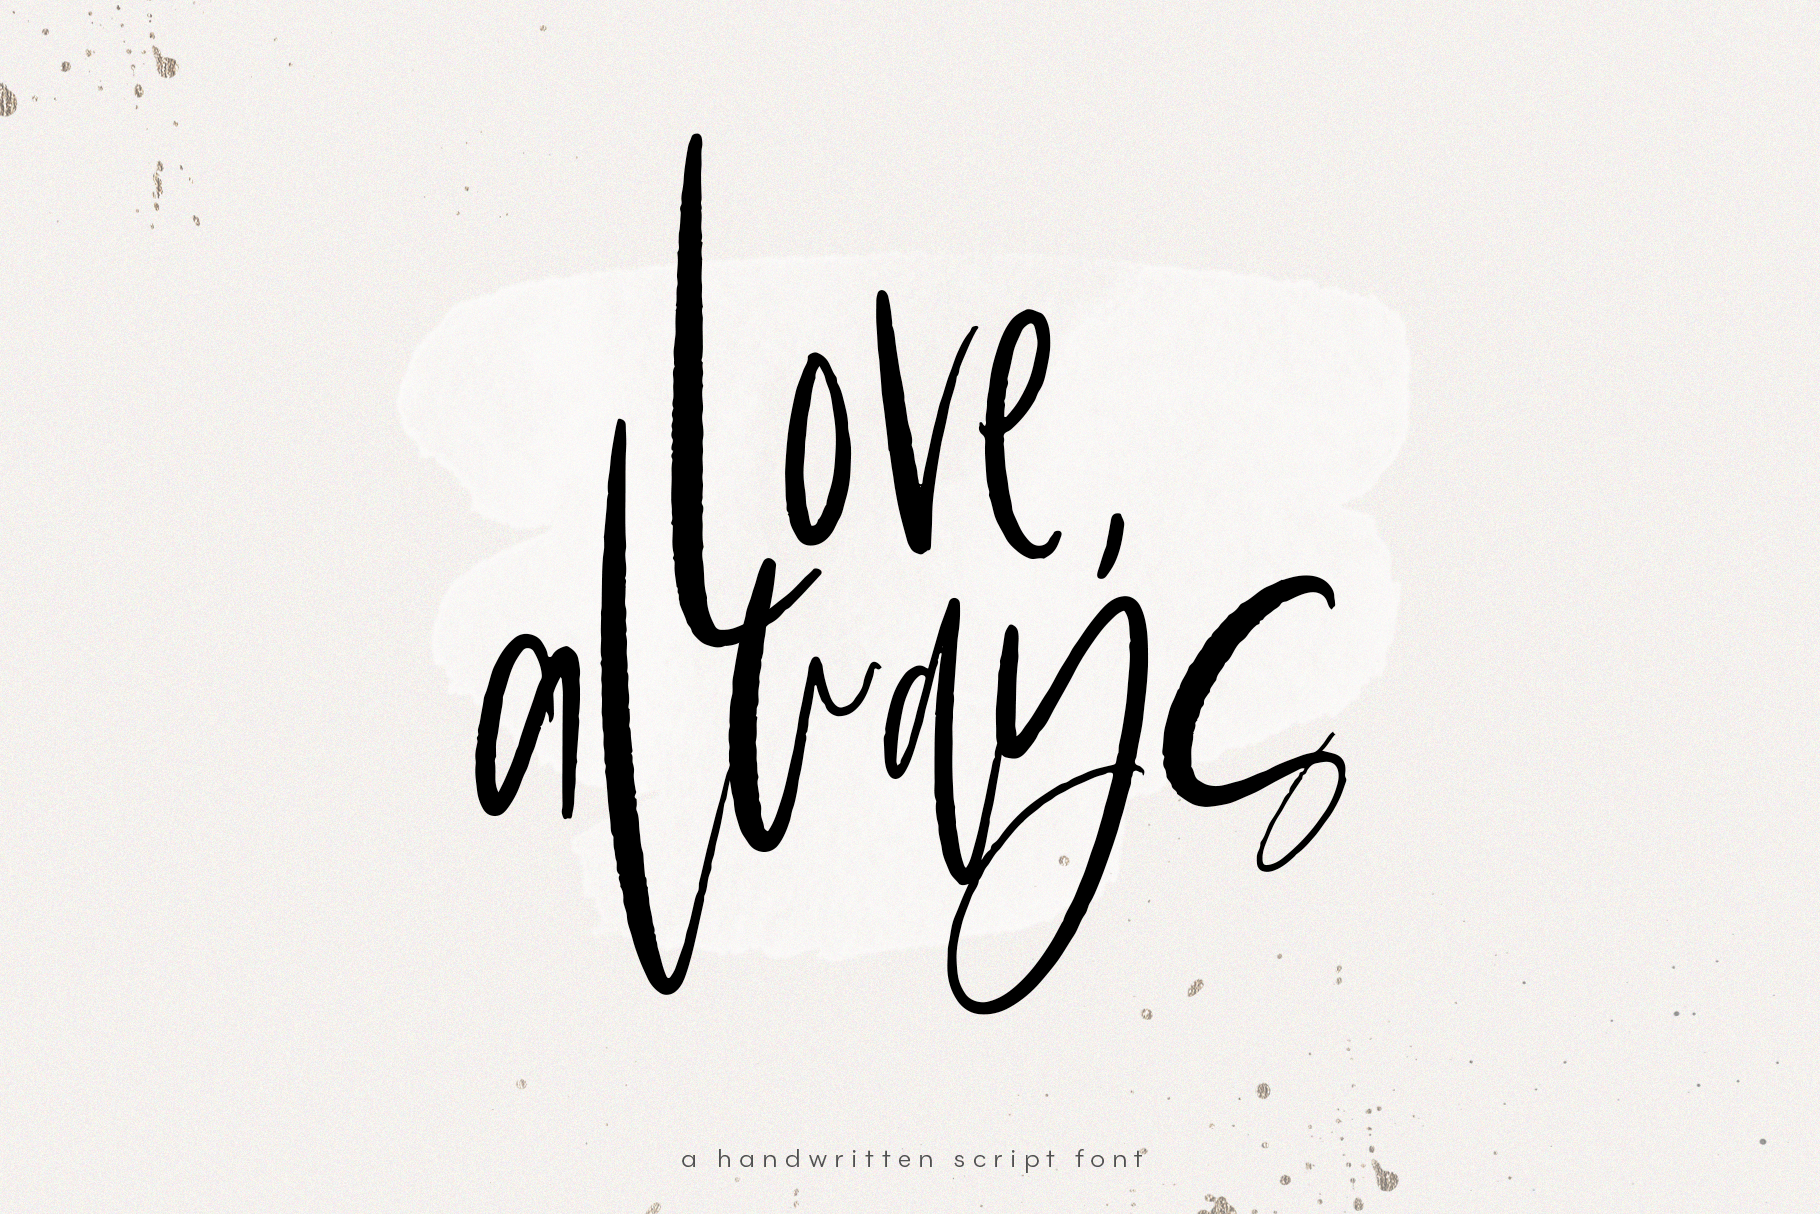 Love Always - A Handwritten Font example image 1